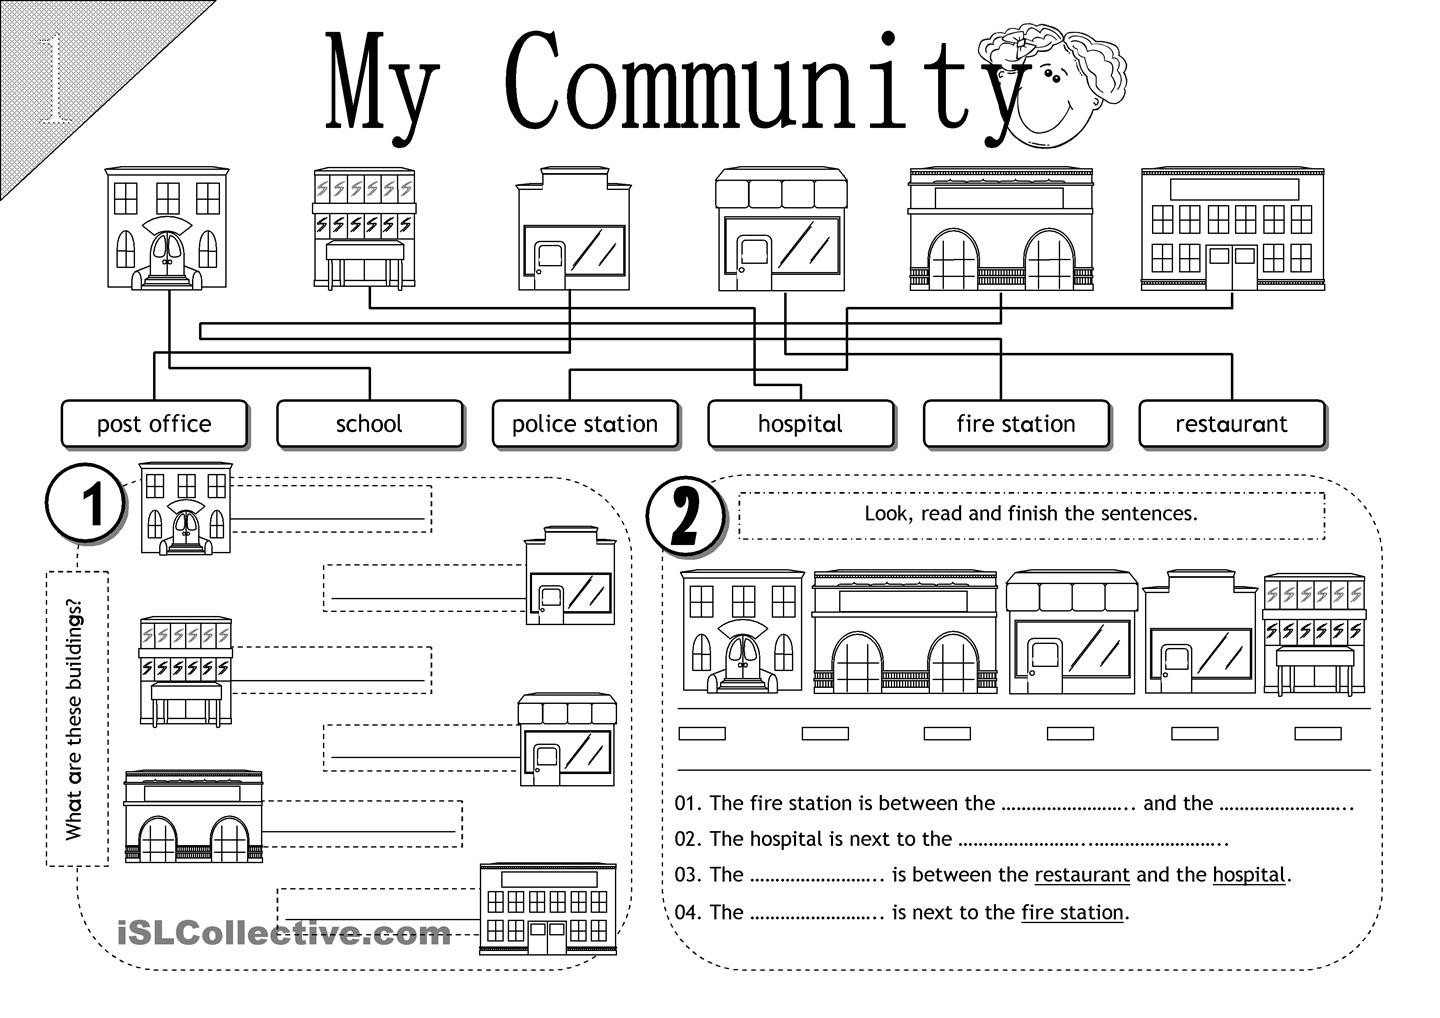 16 Best Images of Elementary Social Studies Community